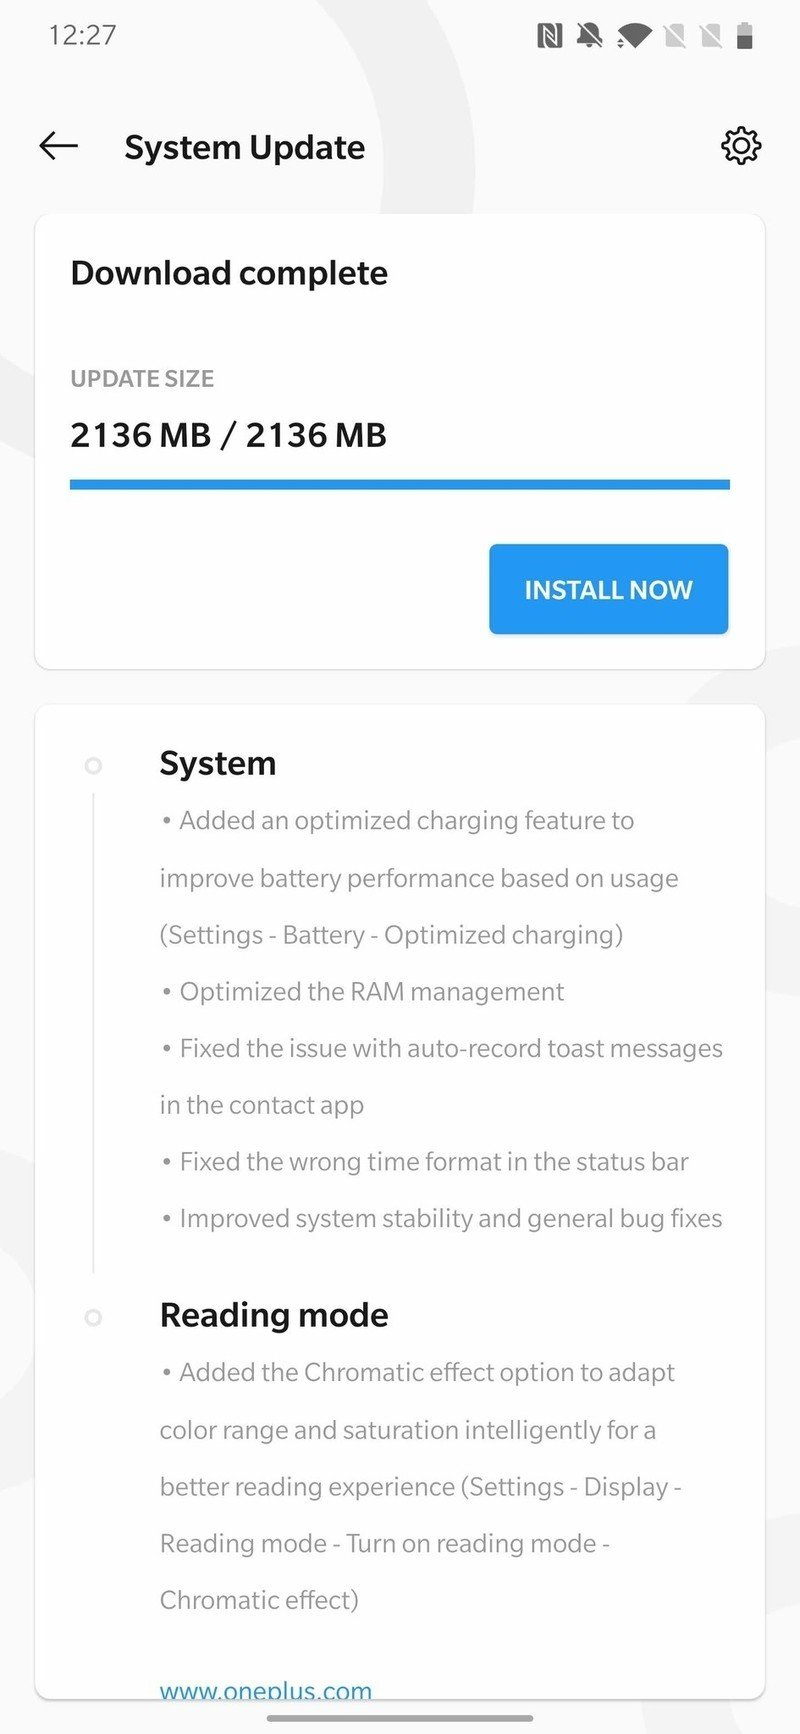 oneplus-how-to-update-software-5.jpg?ito